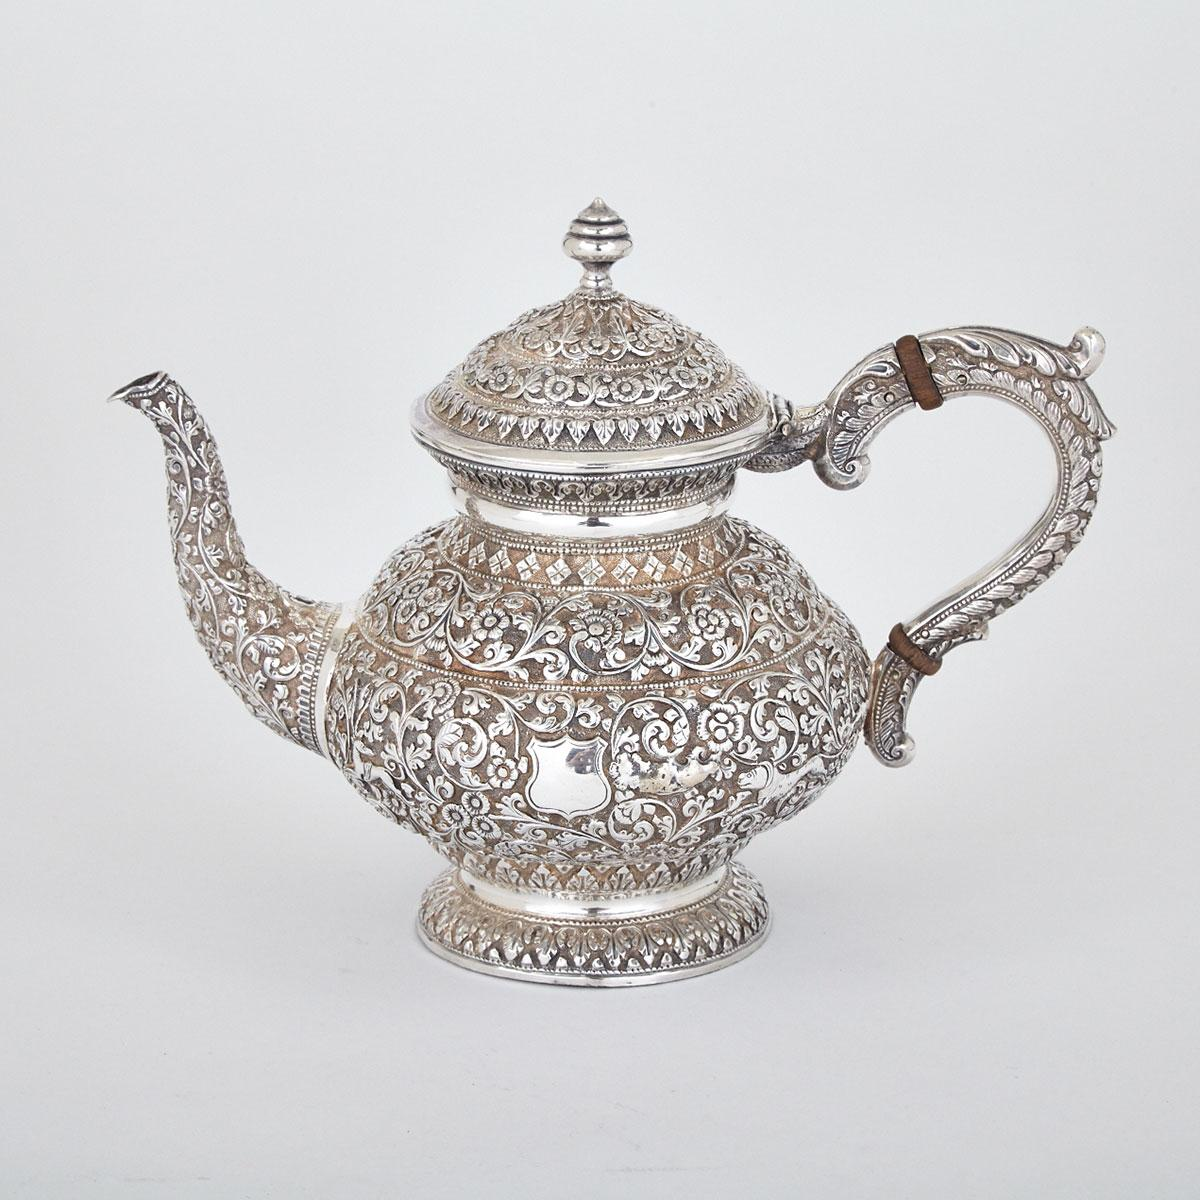 Indian Silver Teapot, late 19th century